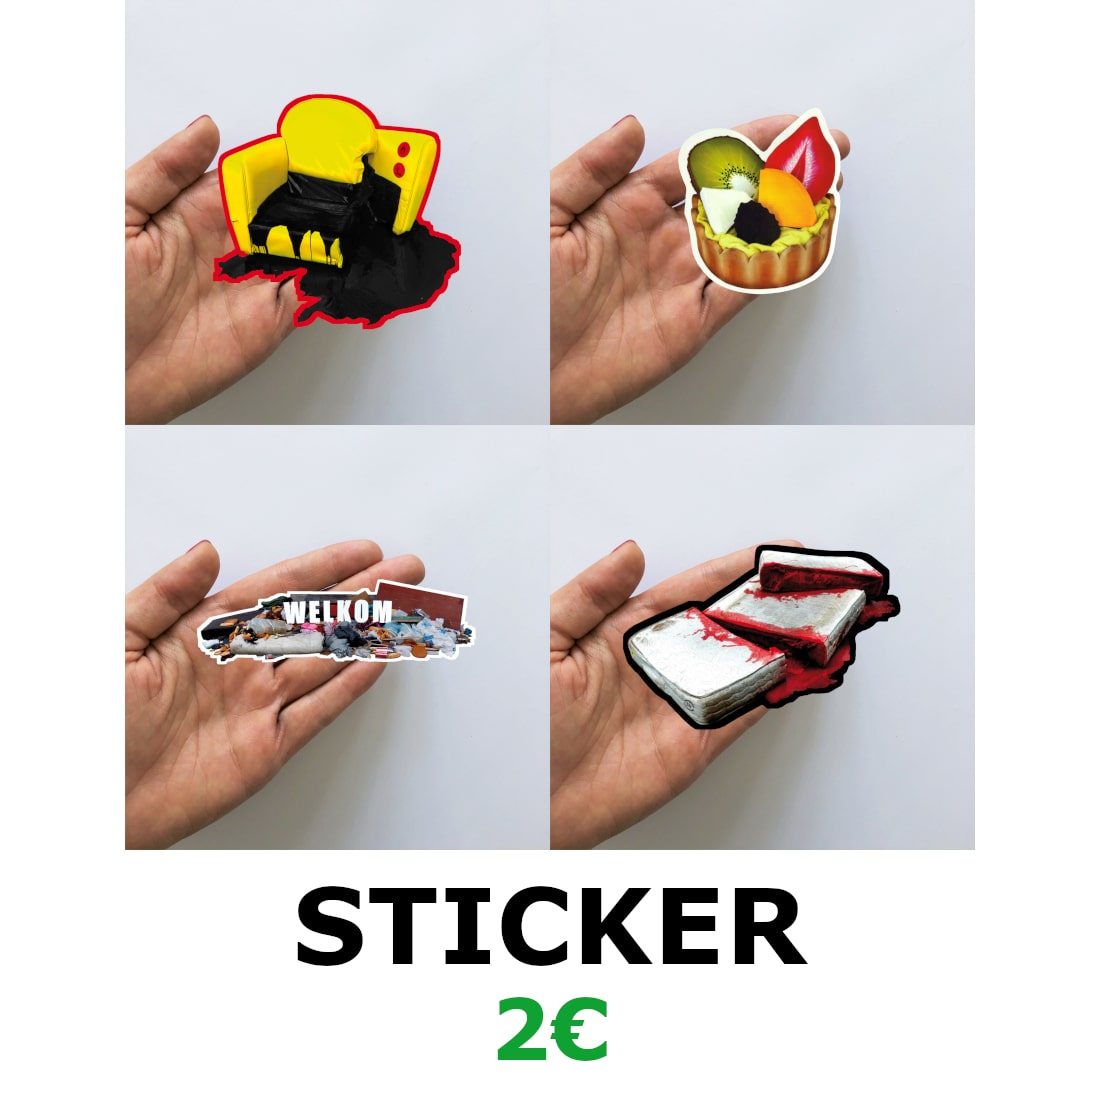 STICKERS lor k _1.jpg